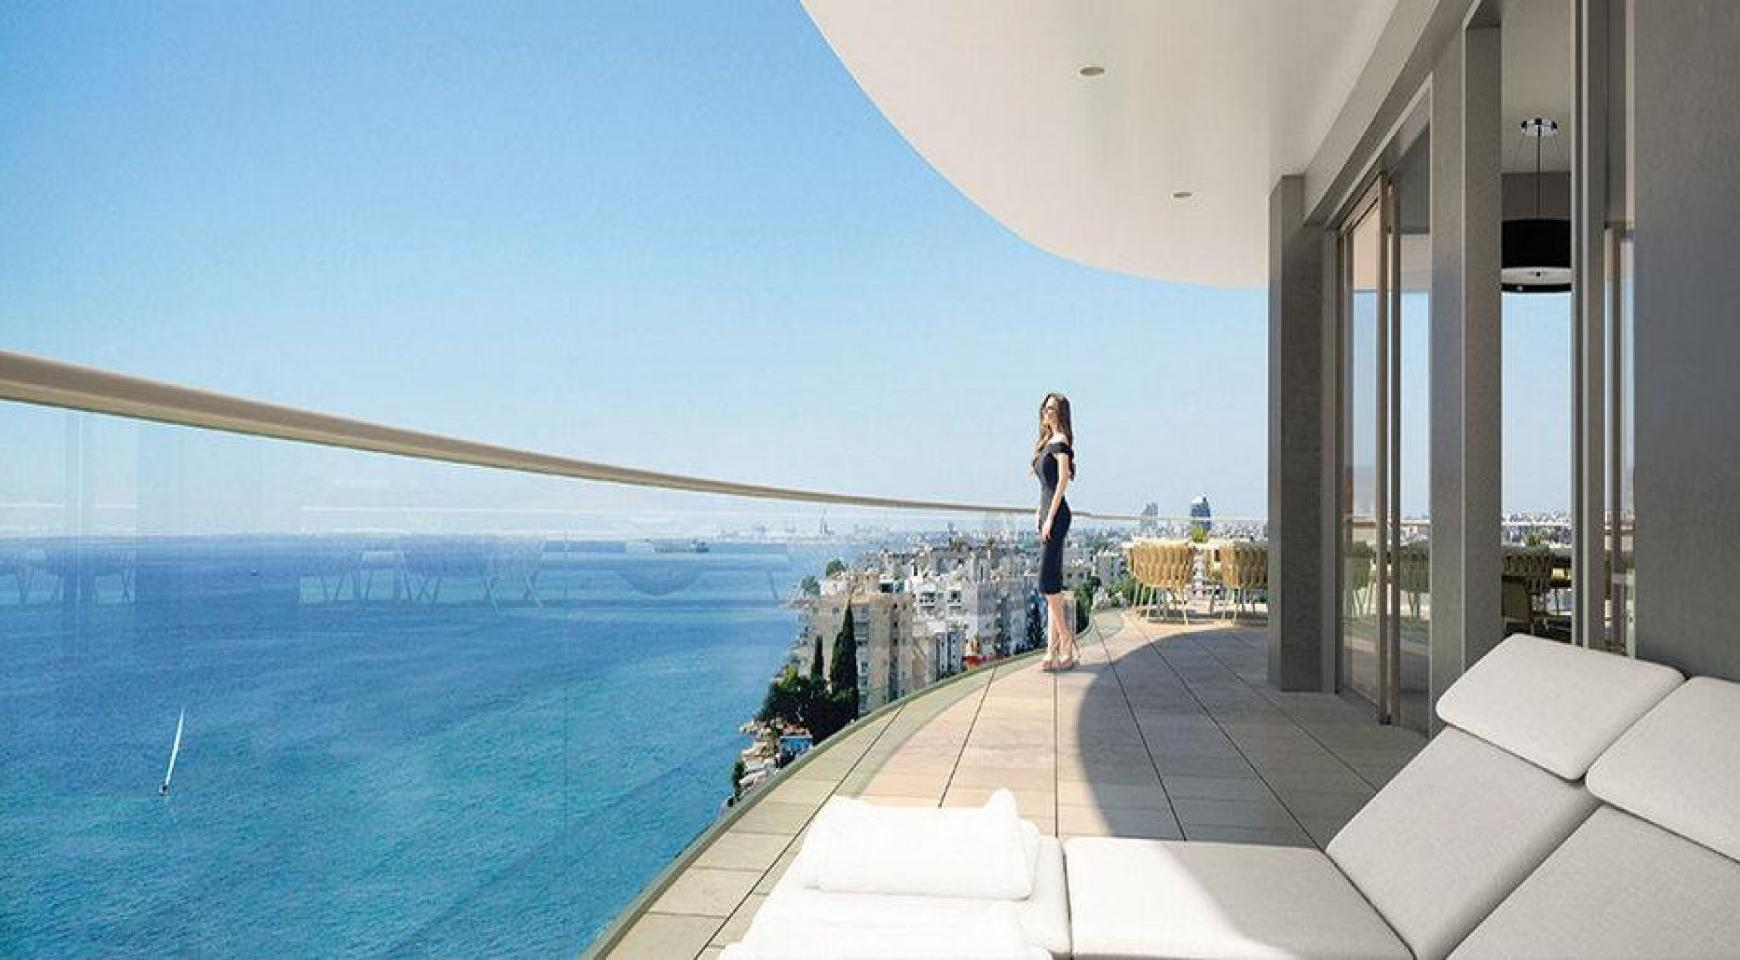 4 Bedroom Apartment in an Exclusive Seafront Project   - 2